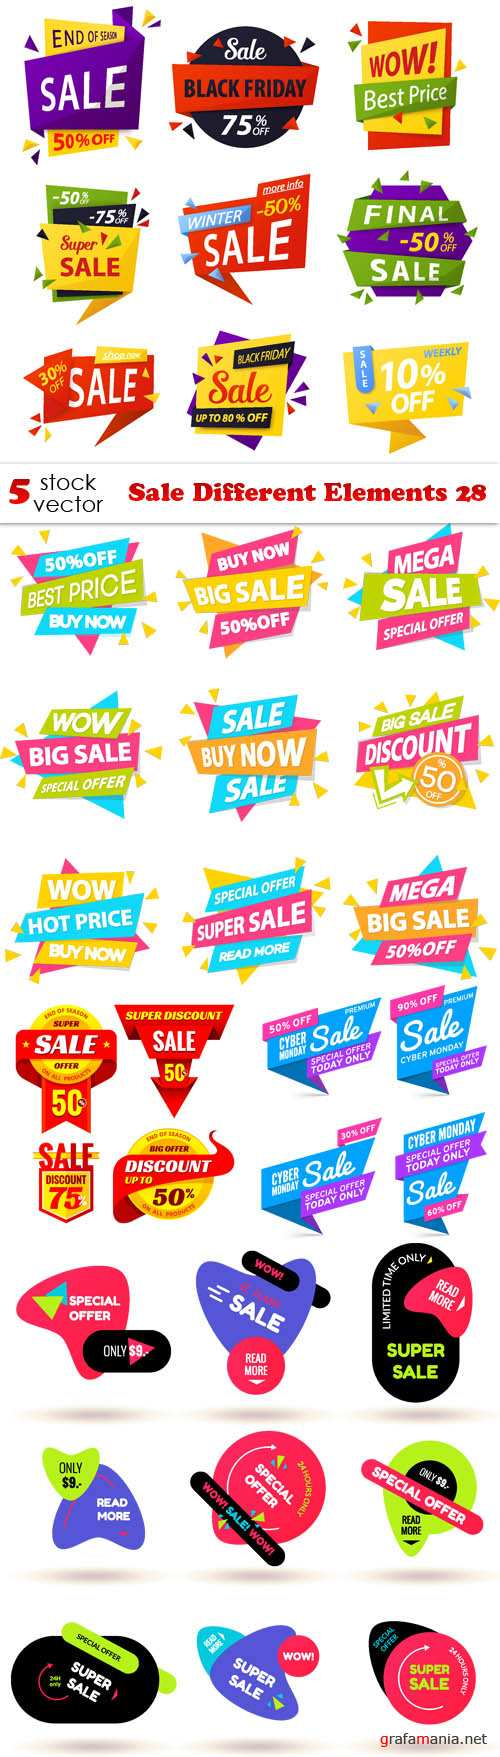 Vectors - Sale Different Elements 28